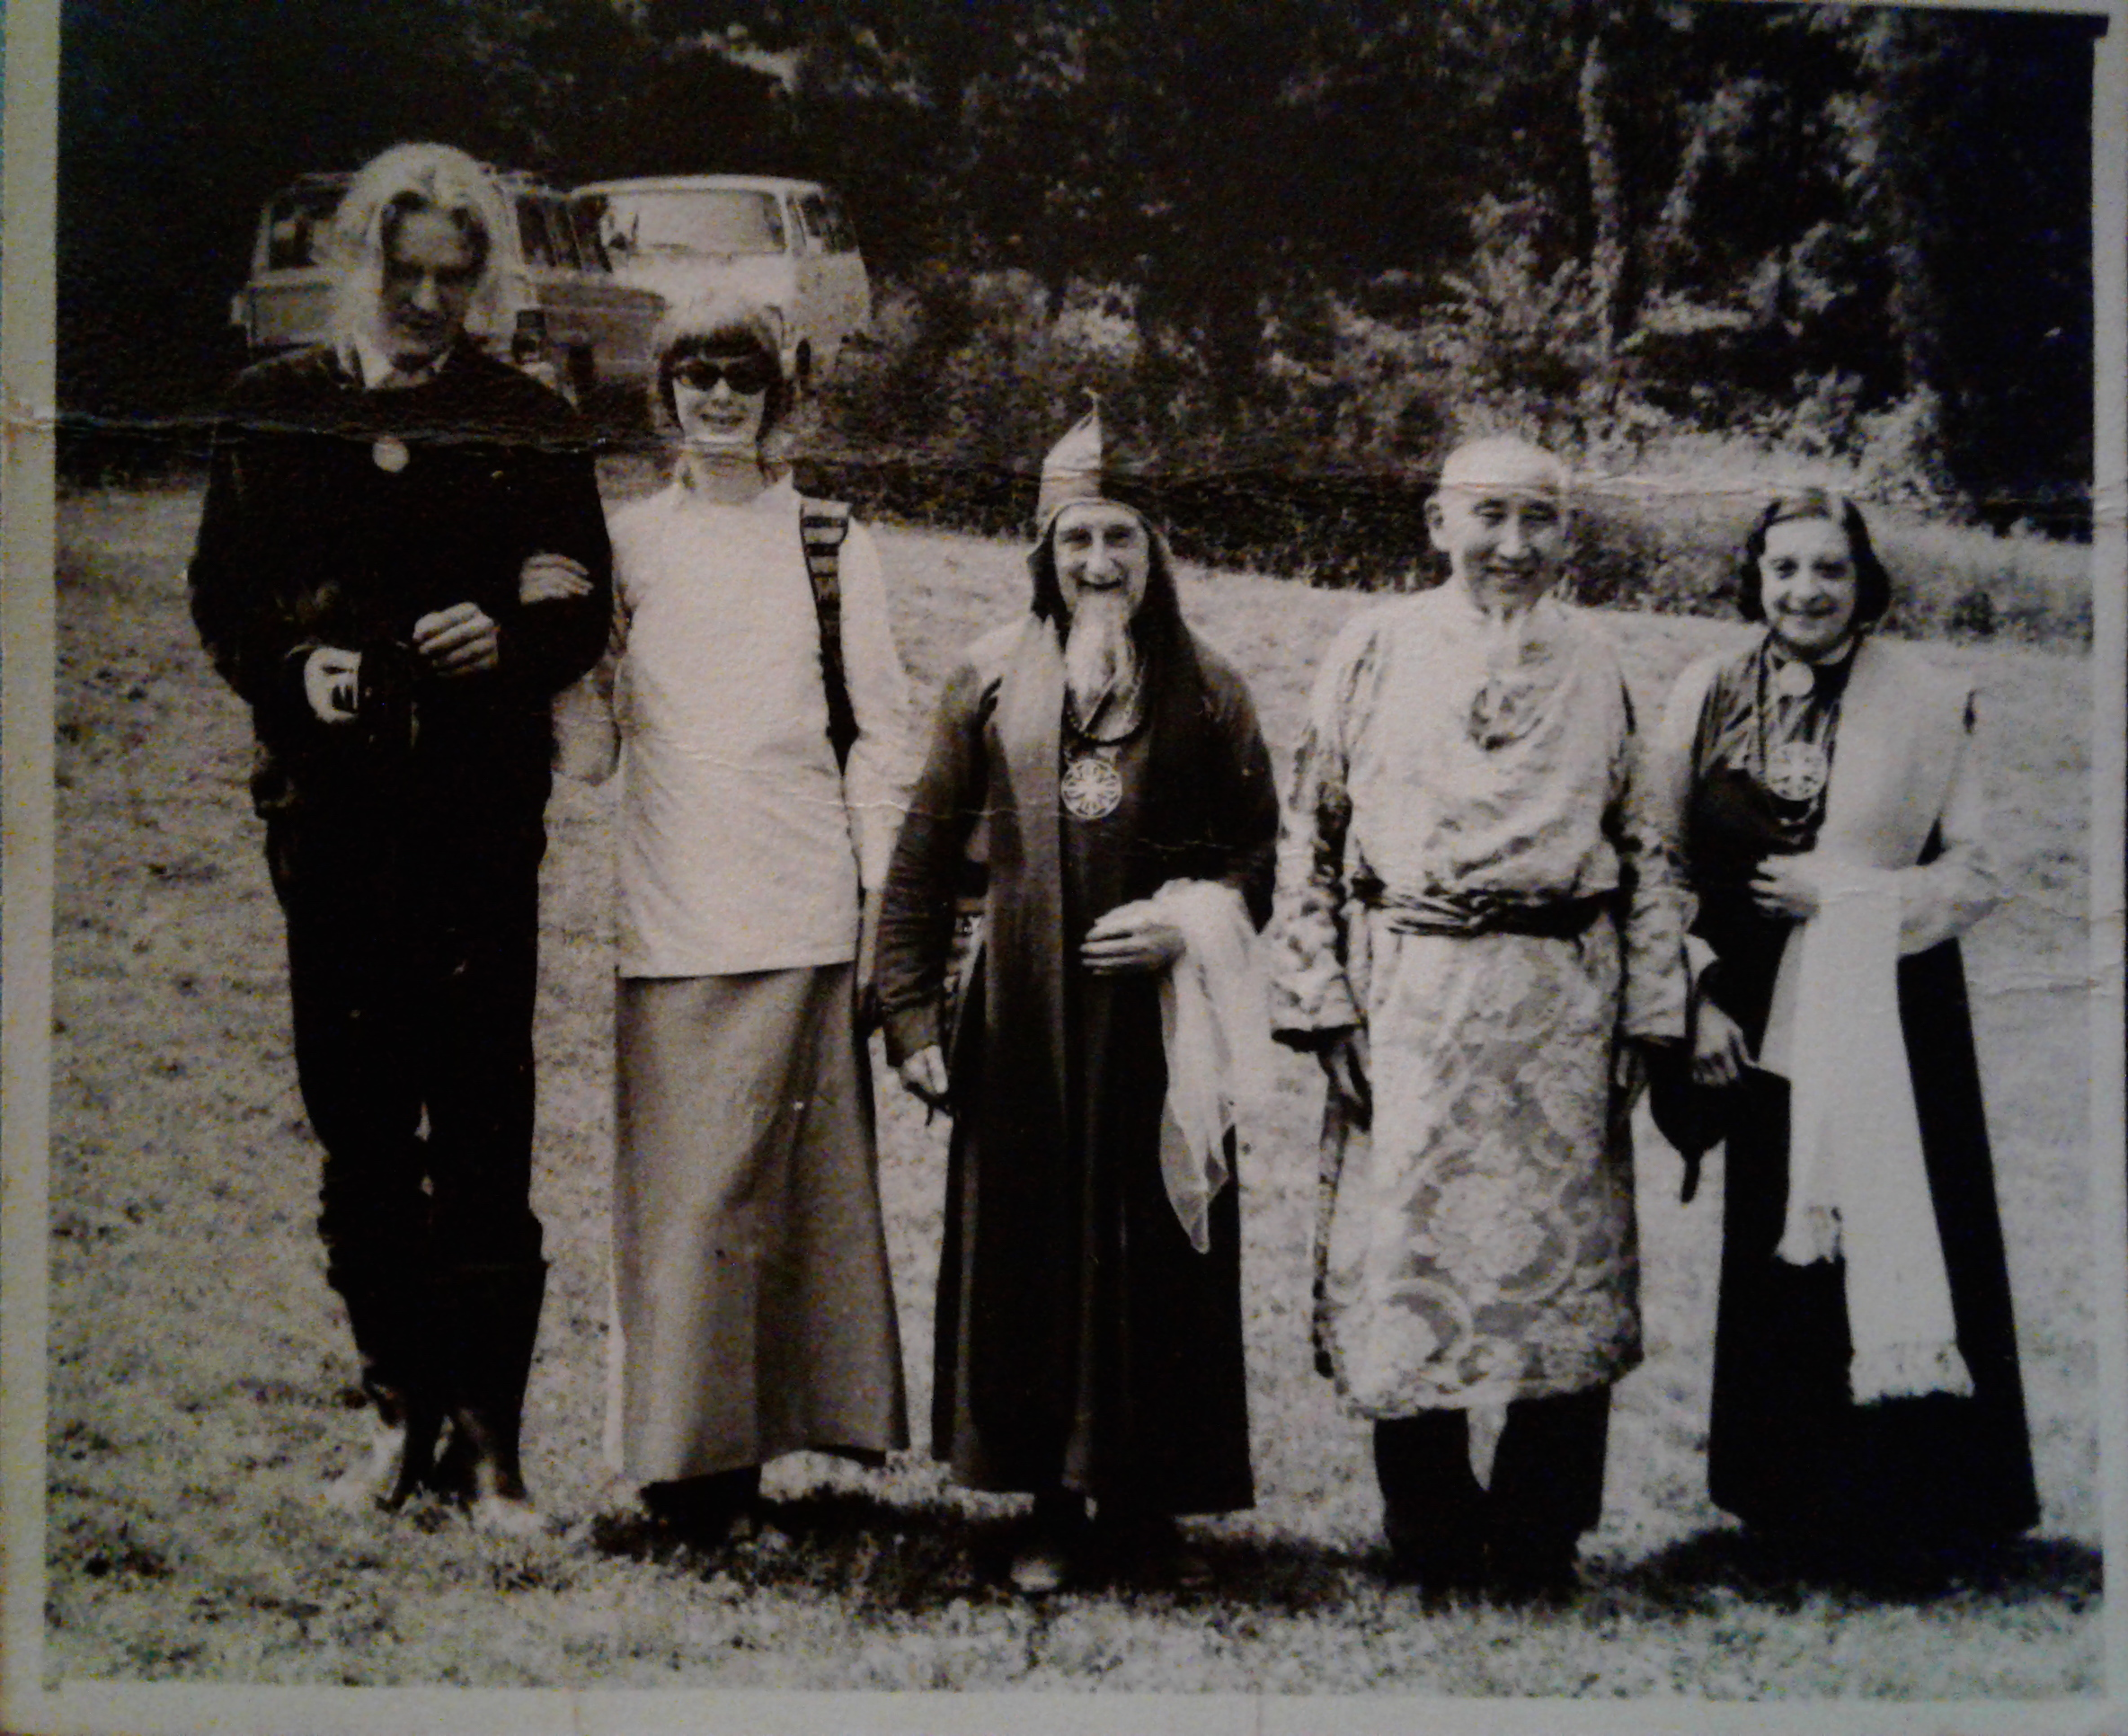 Bob and Nena with Geshe Wangyal, Lama Amagorika Govinda and Lee Gotami in 1973